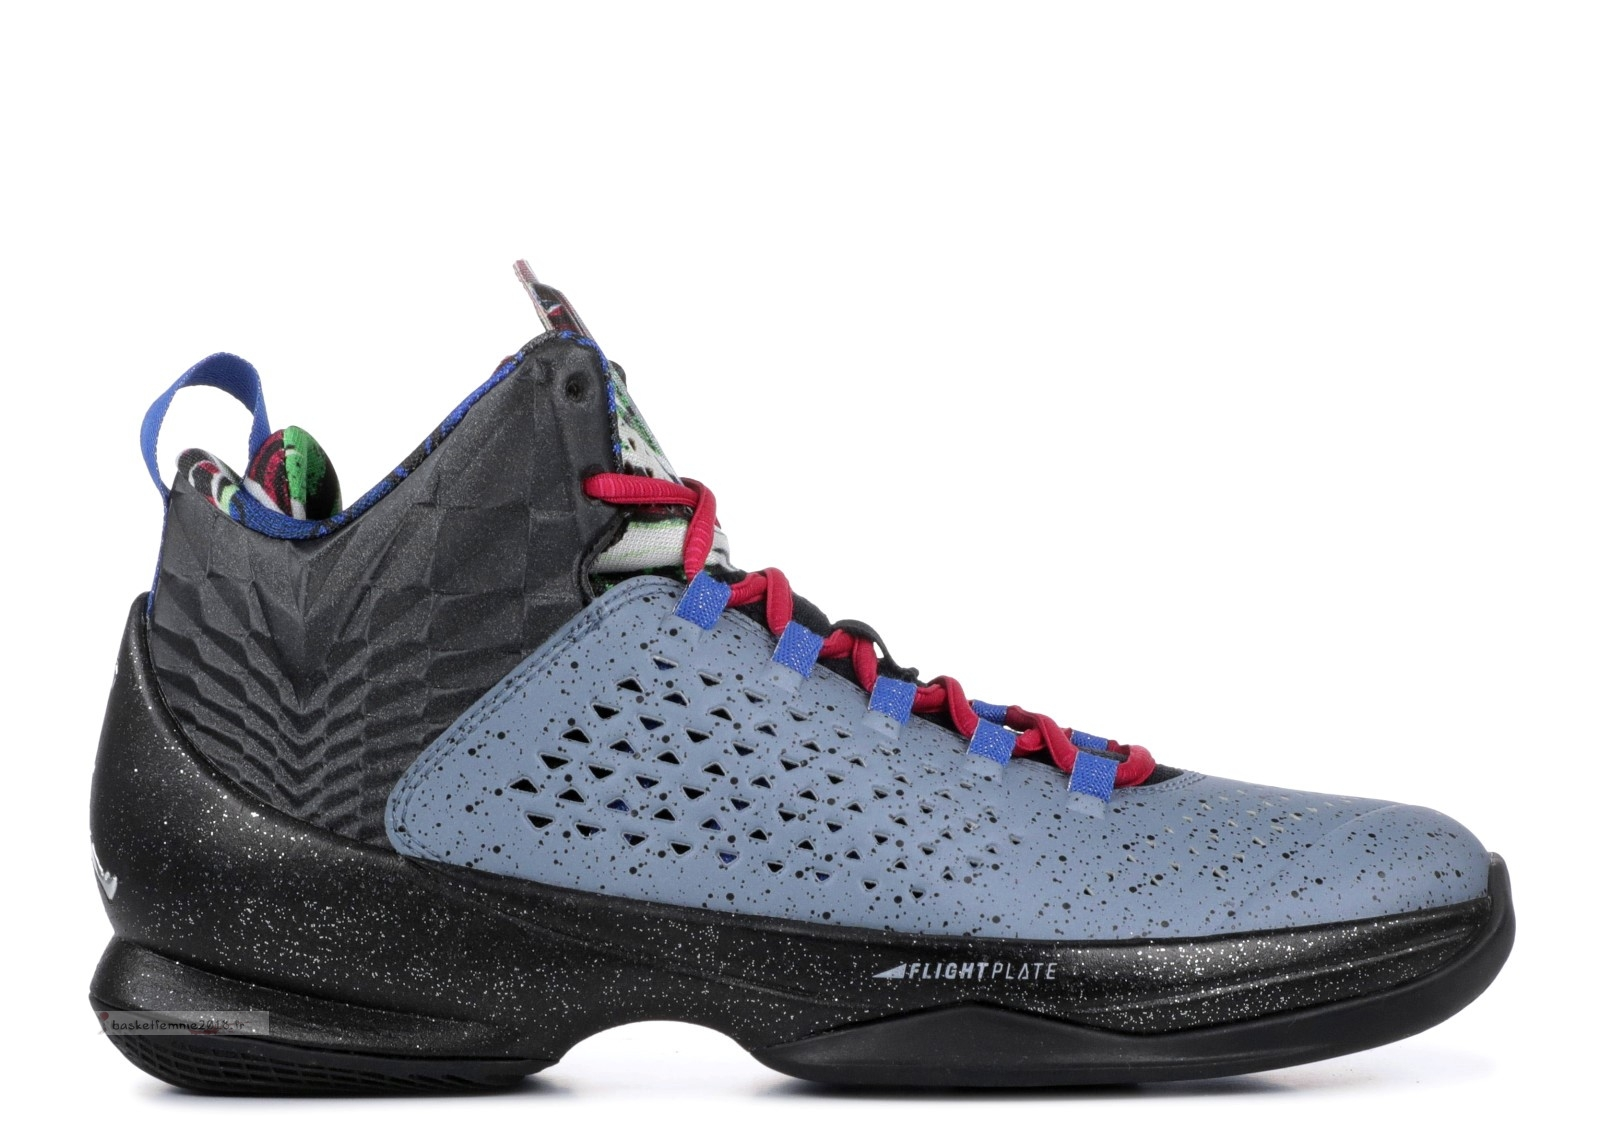 Air Jordan Melo M11 Black Green (716227-413) Chaussure de Basket